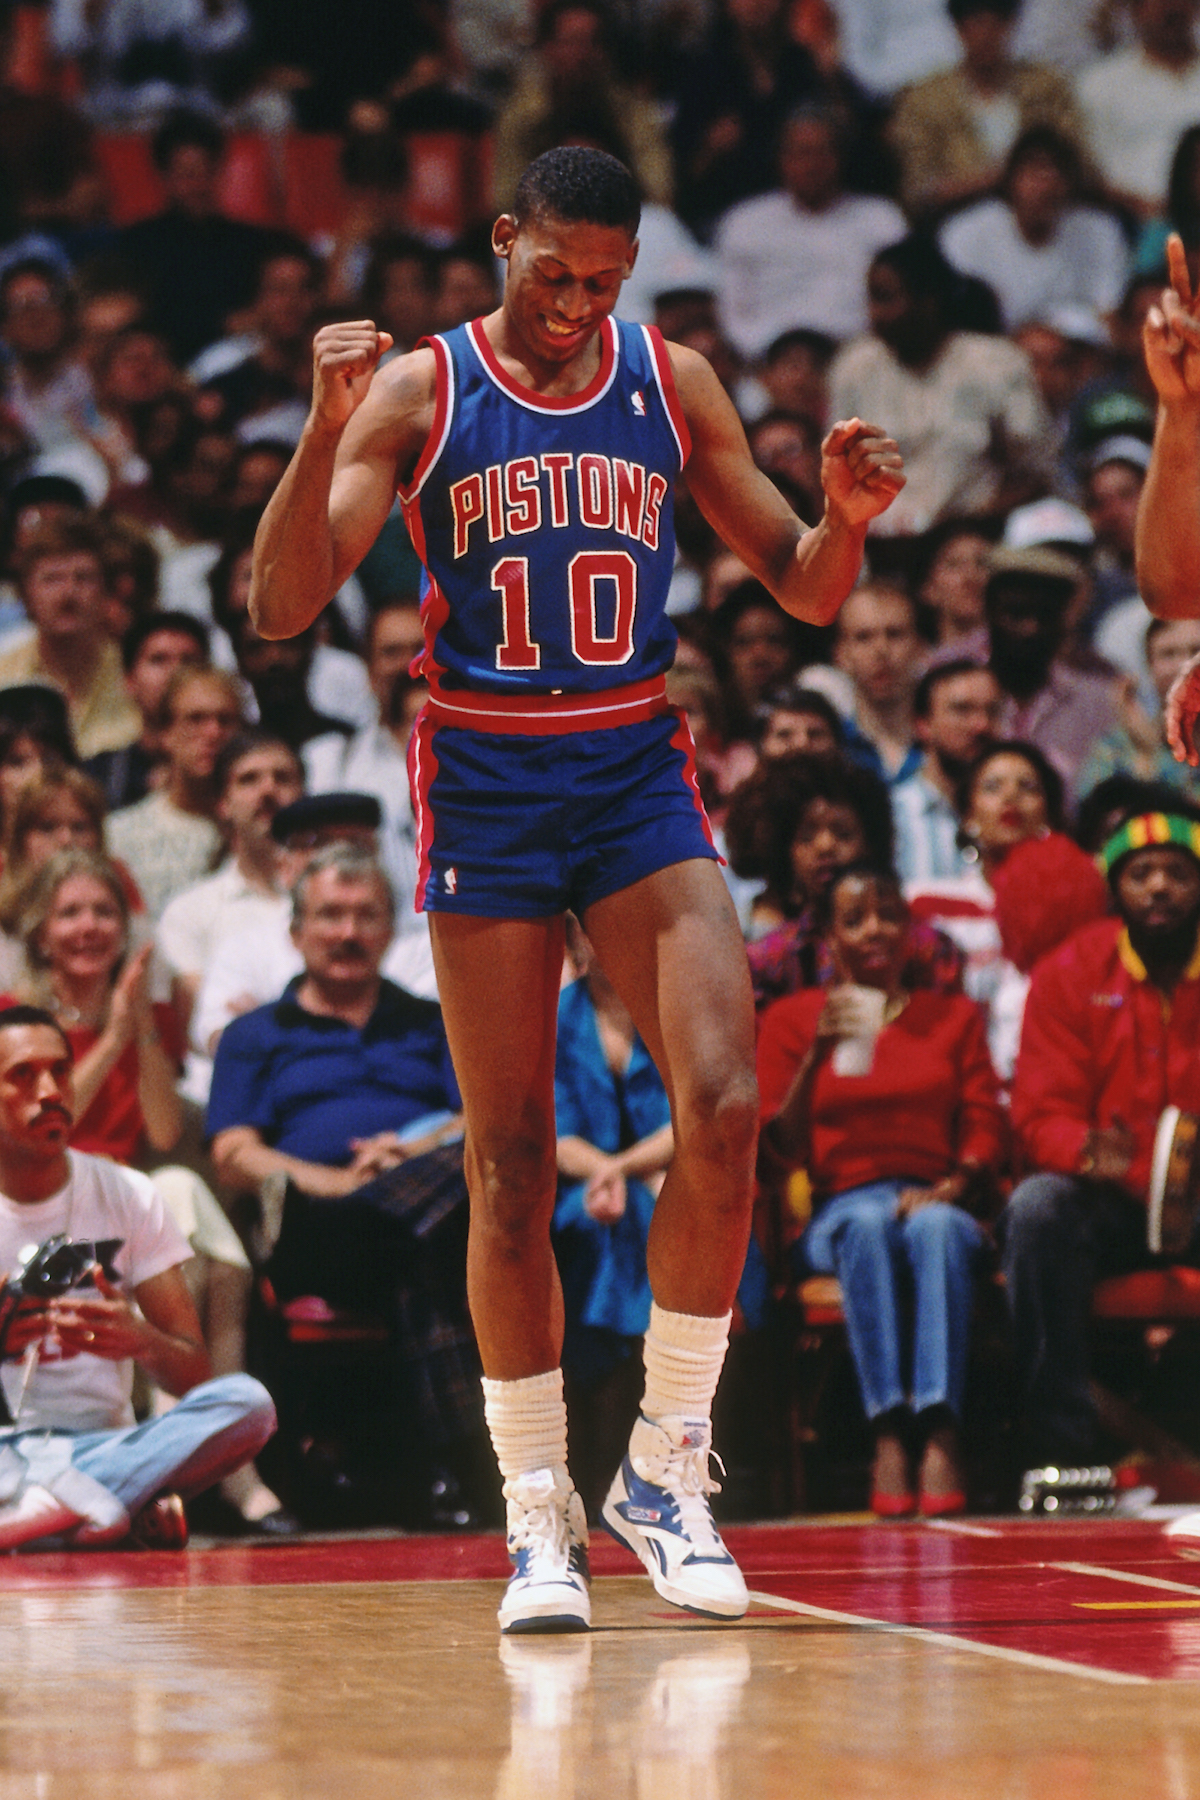 1990 - Dennis Rodman #10 of the Detroit Pistons celebrates in a game against the Atlanta Hawks